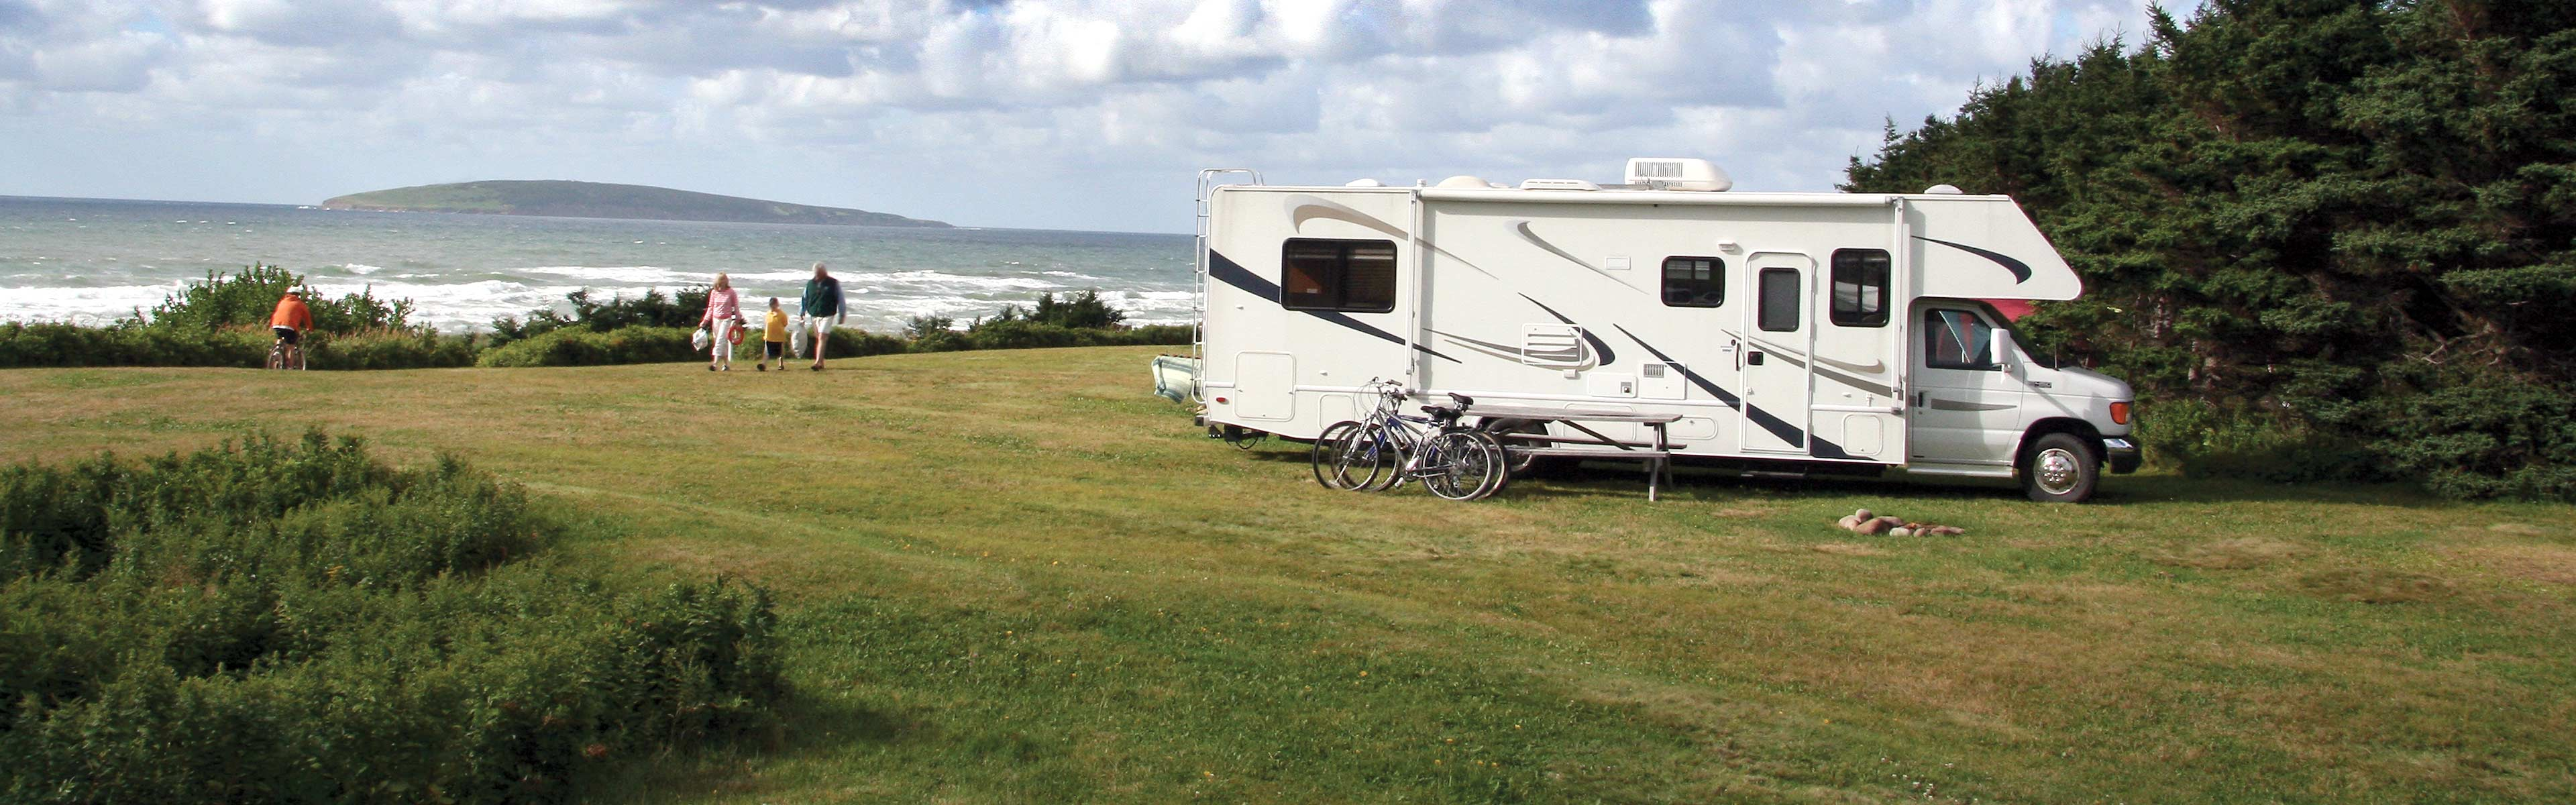 Pre Owned Travel Trailers For Sale